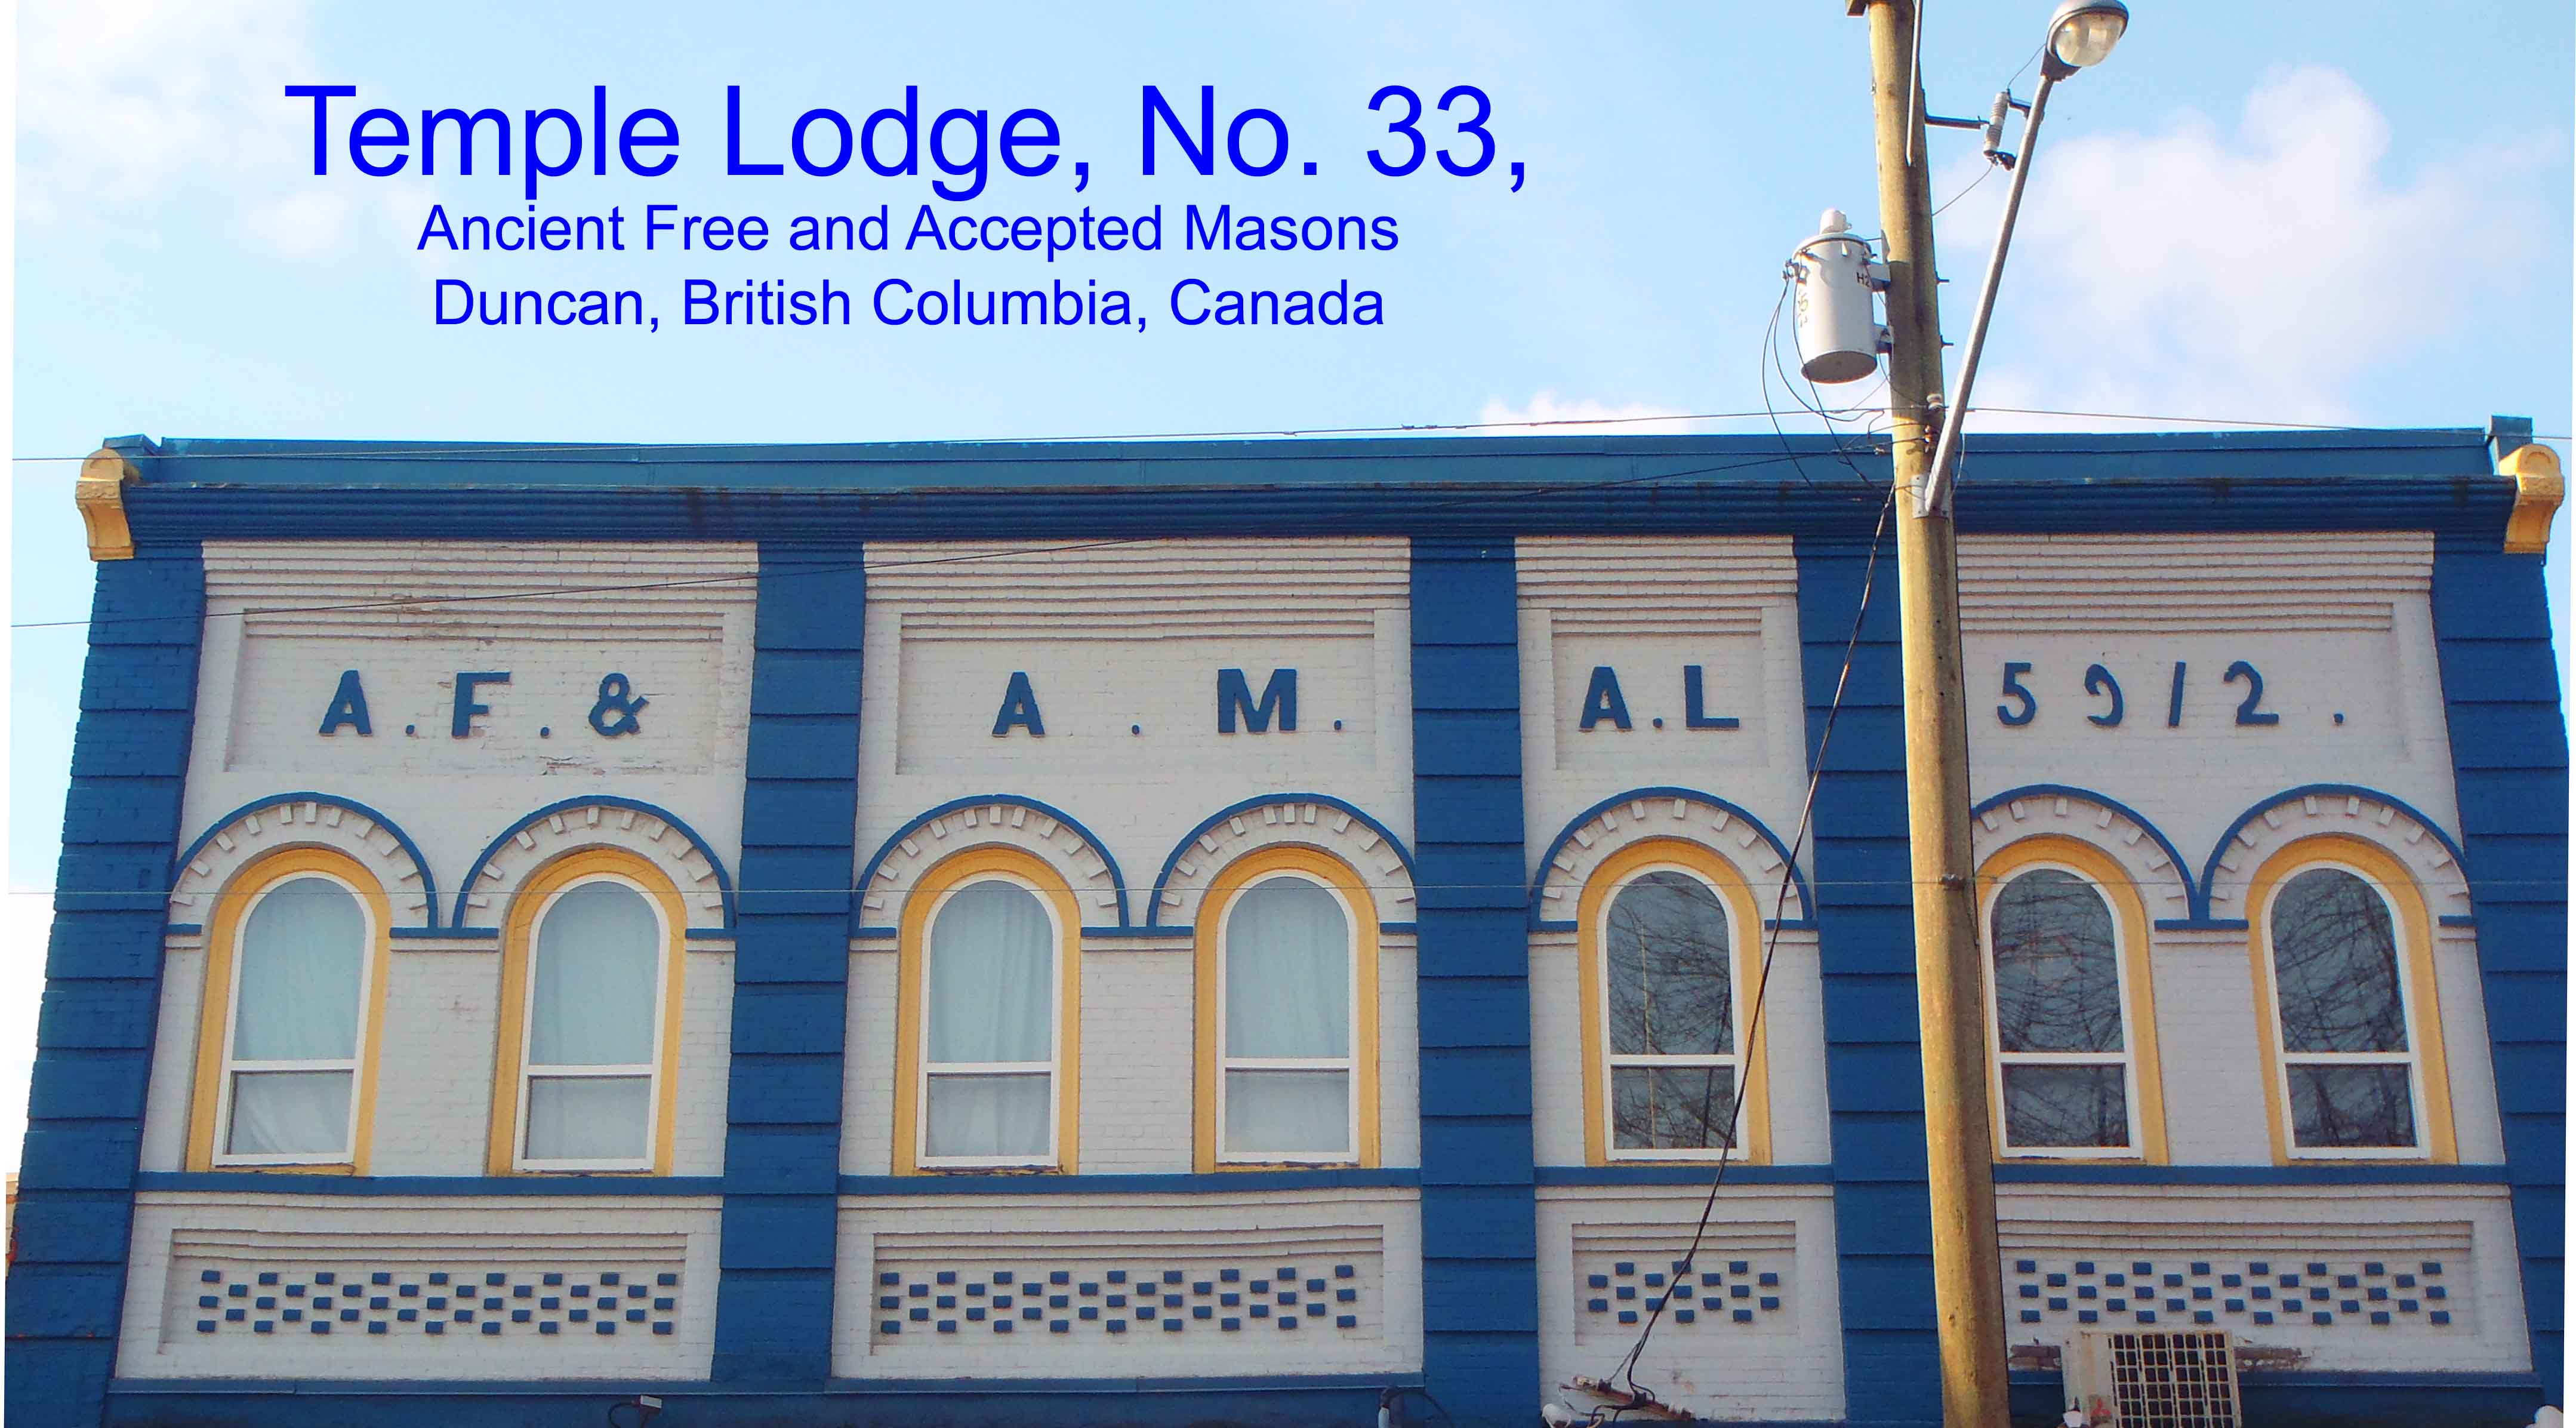 Masonic Temple, Duncan, B.C. and Temple Lodge header